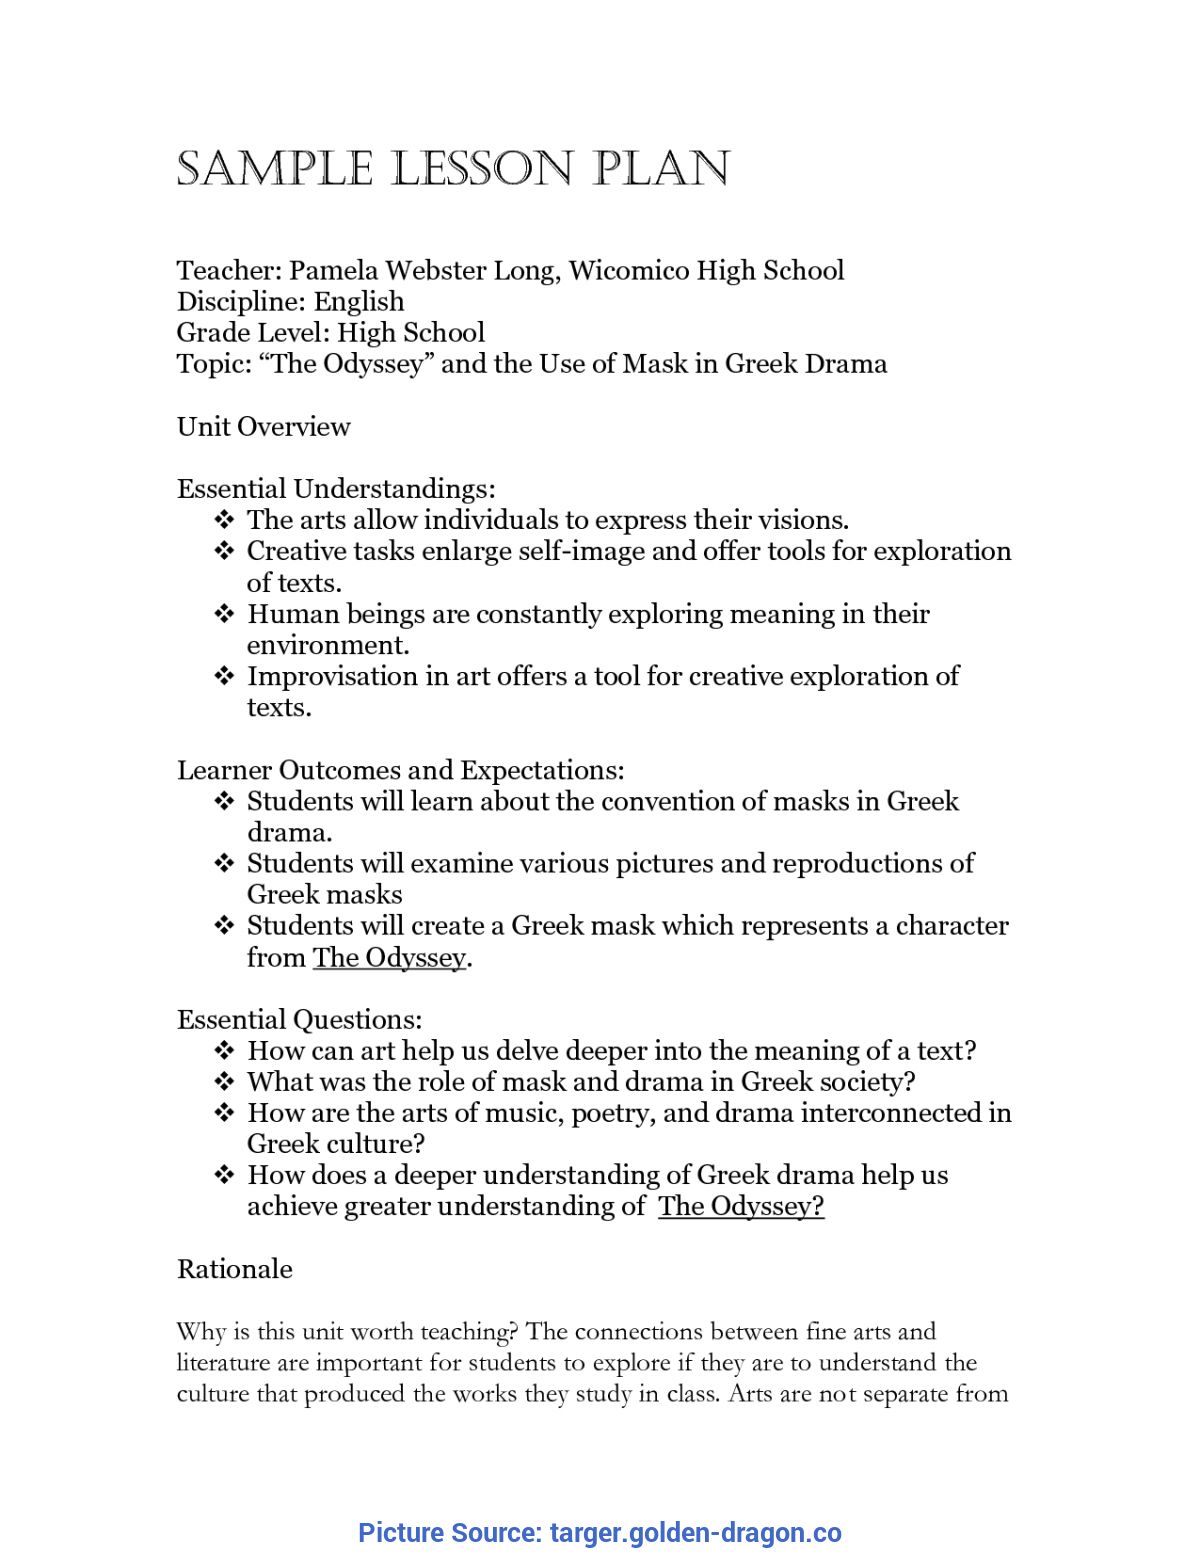 Fresh Sample Lesson Plan In English For High School Middle School Lesson Plan Template - Targer.Golden-Drago